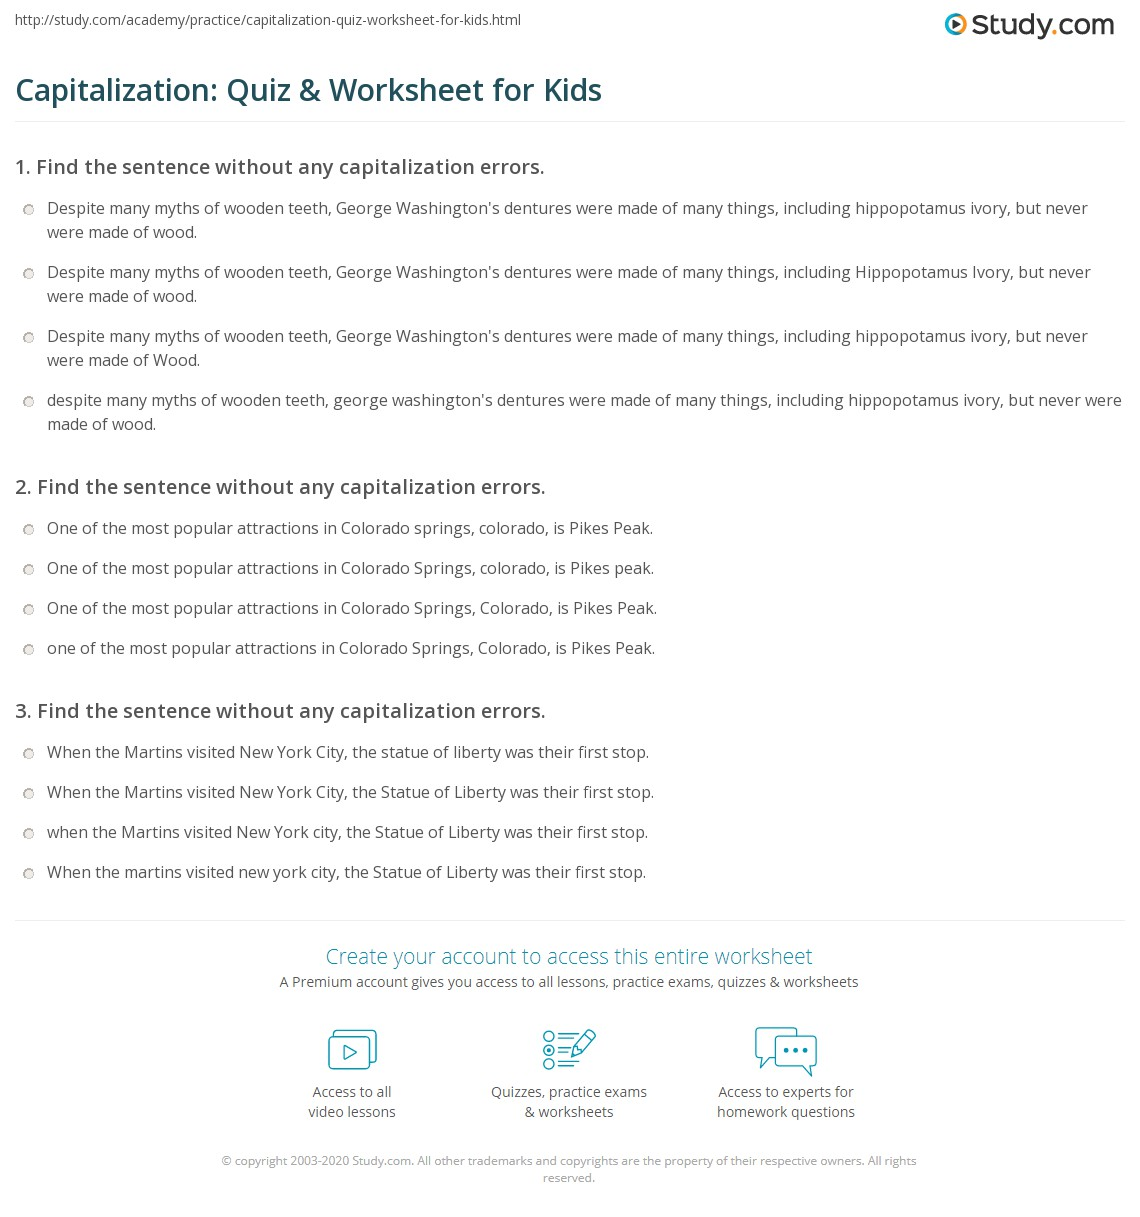 Free Worksheet Capitalization Practice Worksheets capitalization quiz worksheet for kids study com print lesson rules definition worksheet